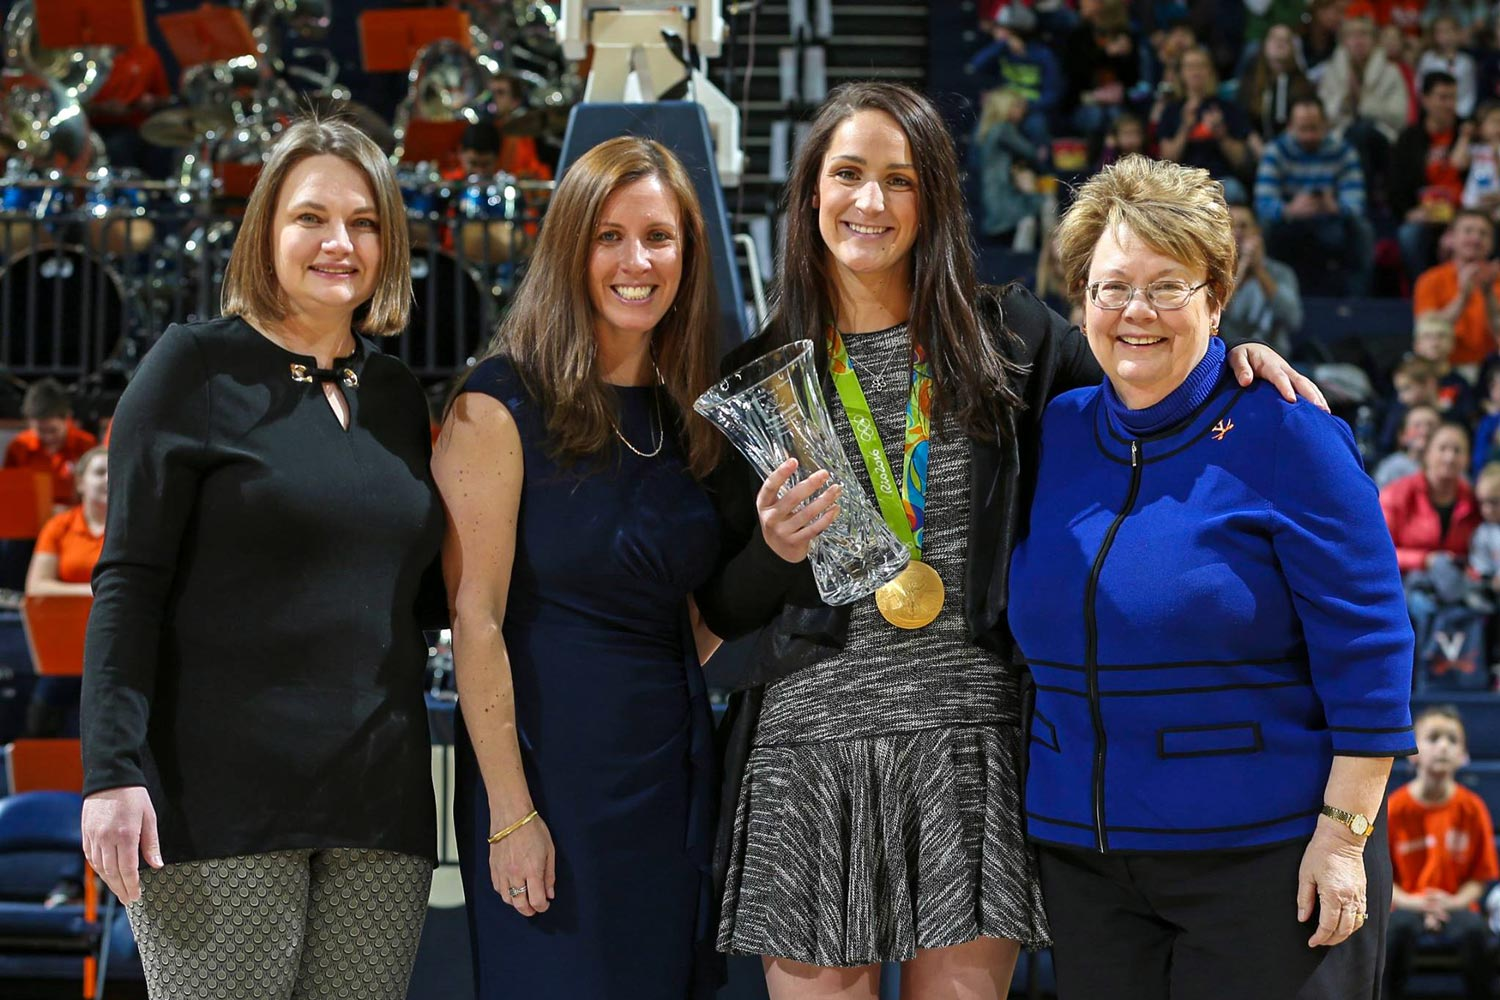 Gold medalist Leah Smith, center, was honored at the National Girls and Women in Sports event in February, with, from left, Women's Center Director Abigail Palko, Valerie Richardson of Athletics and UVA President Teresa A. Sullivan. (Photo by Matt Riley)